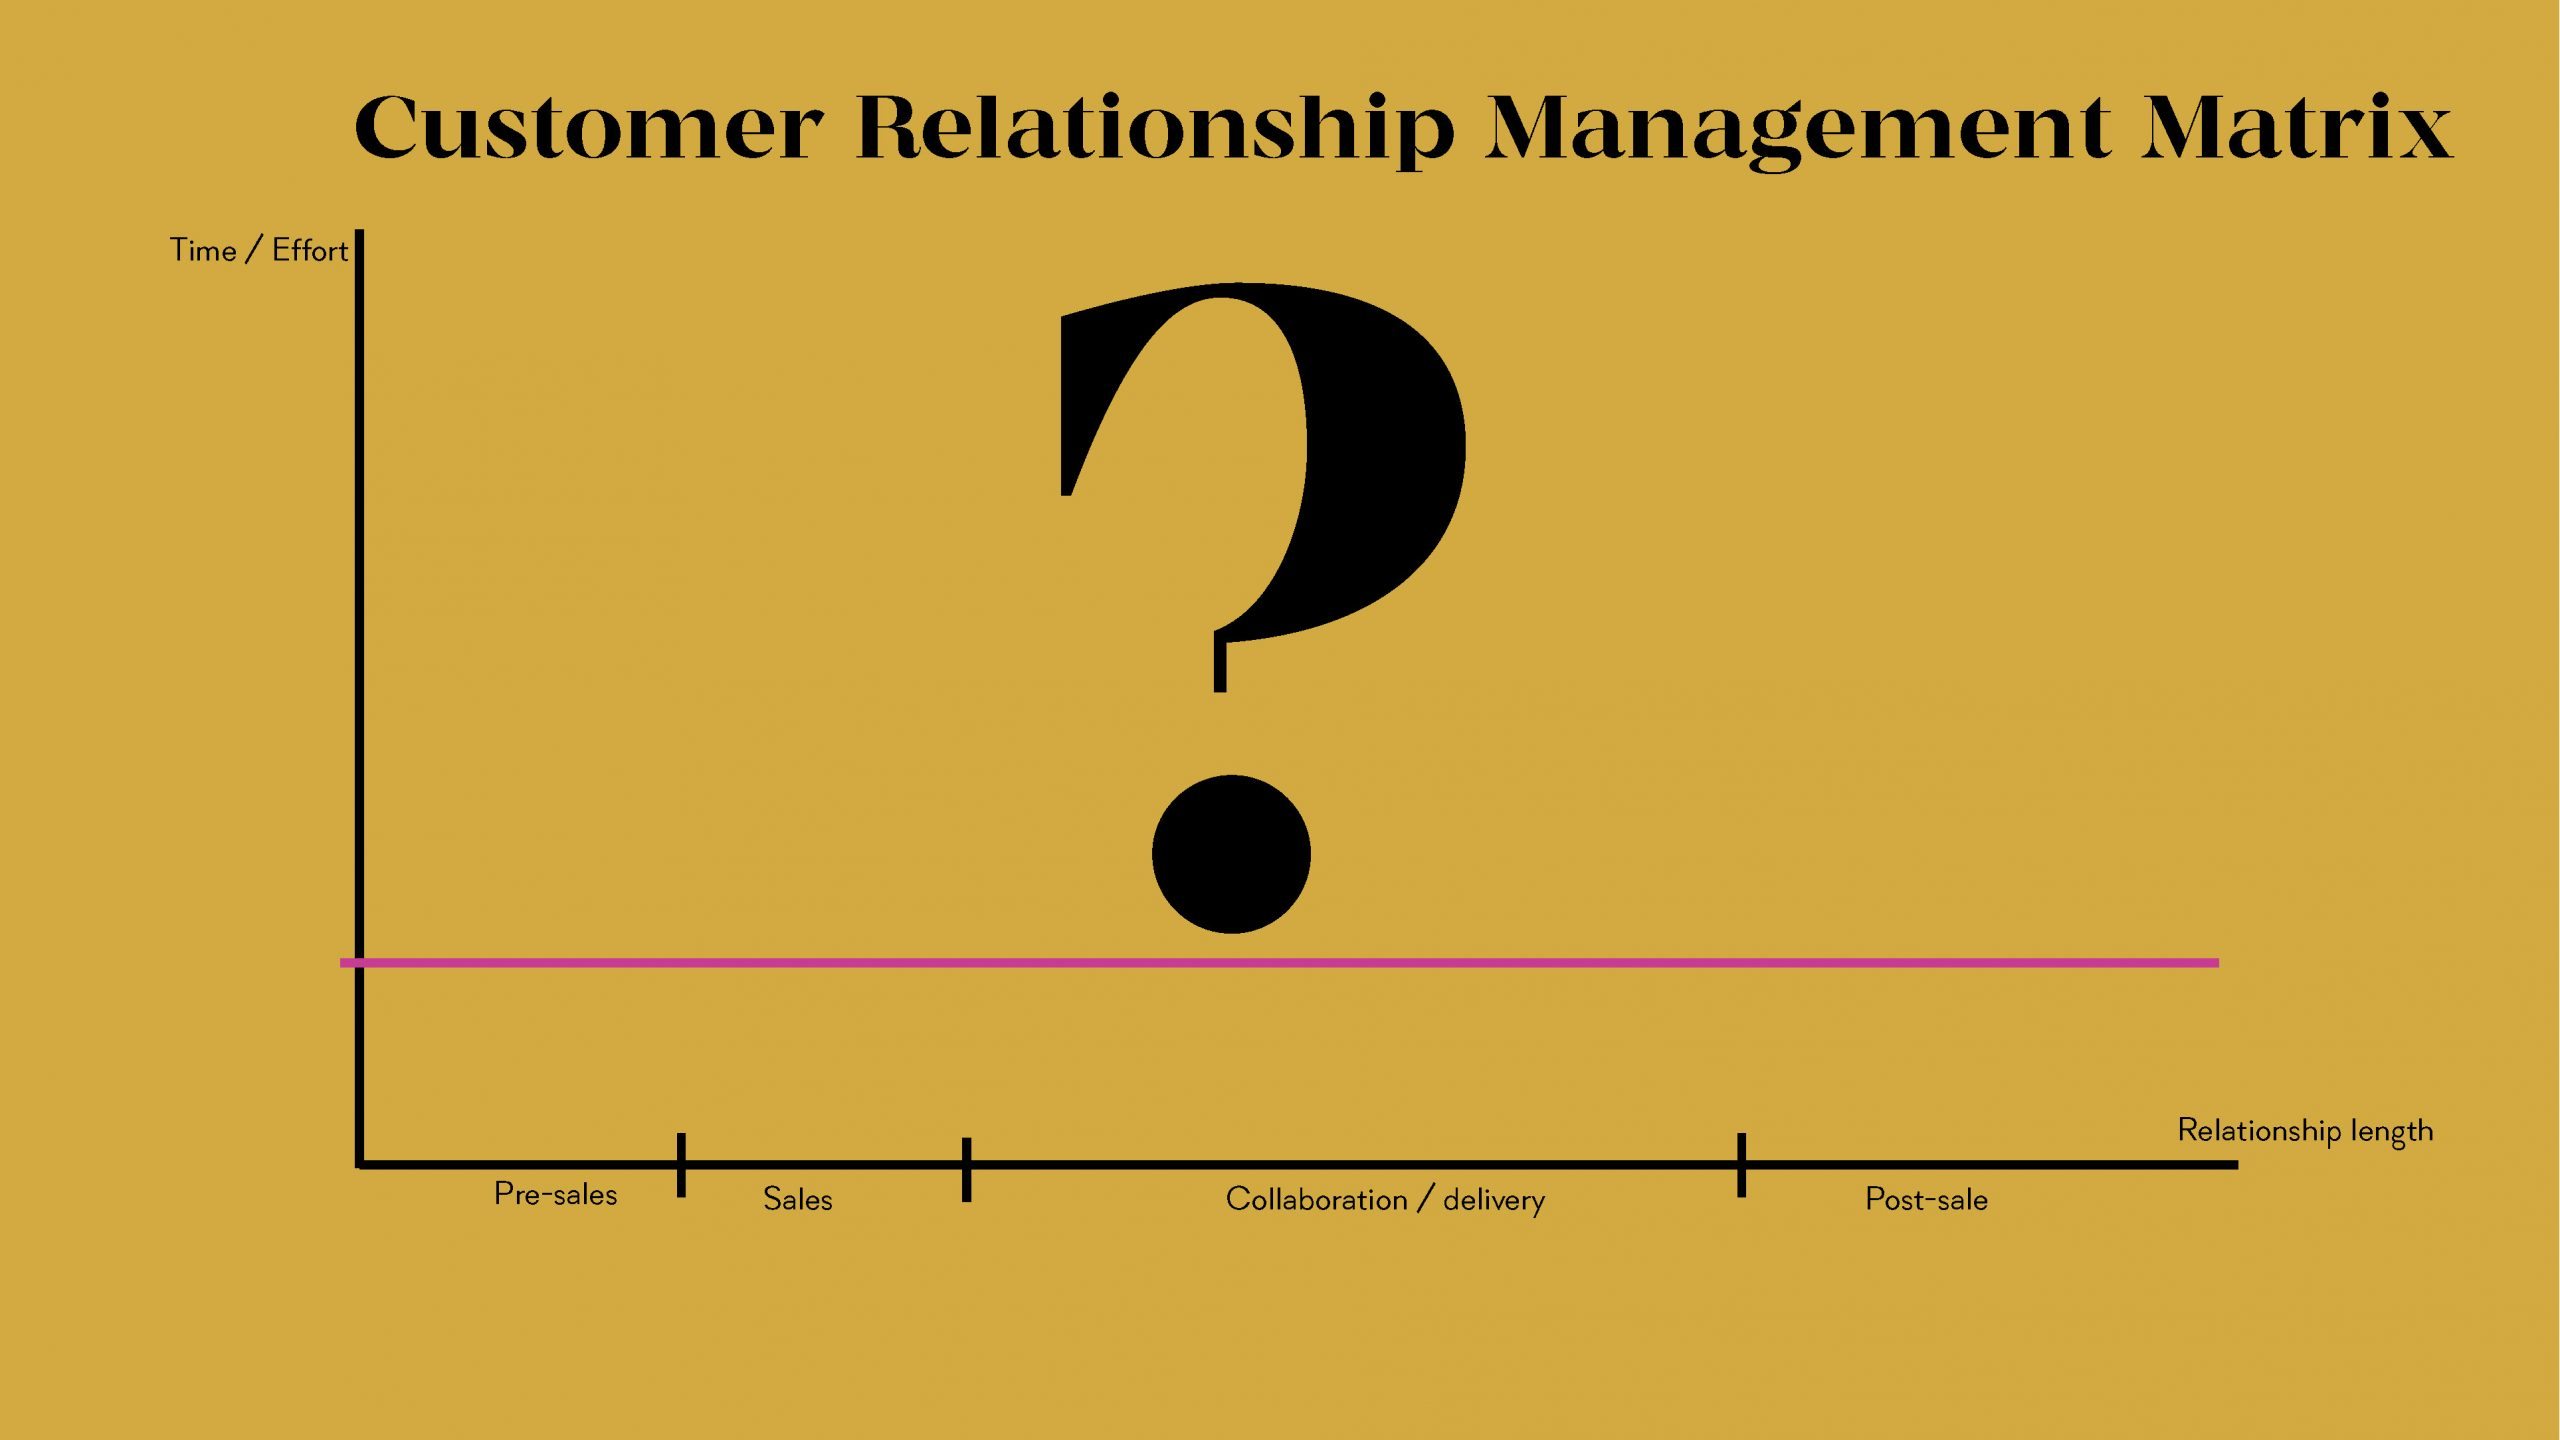 How to Build Systems That Support and Nurture Your Customer Relationships